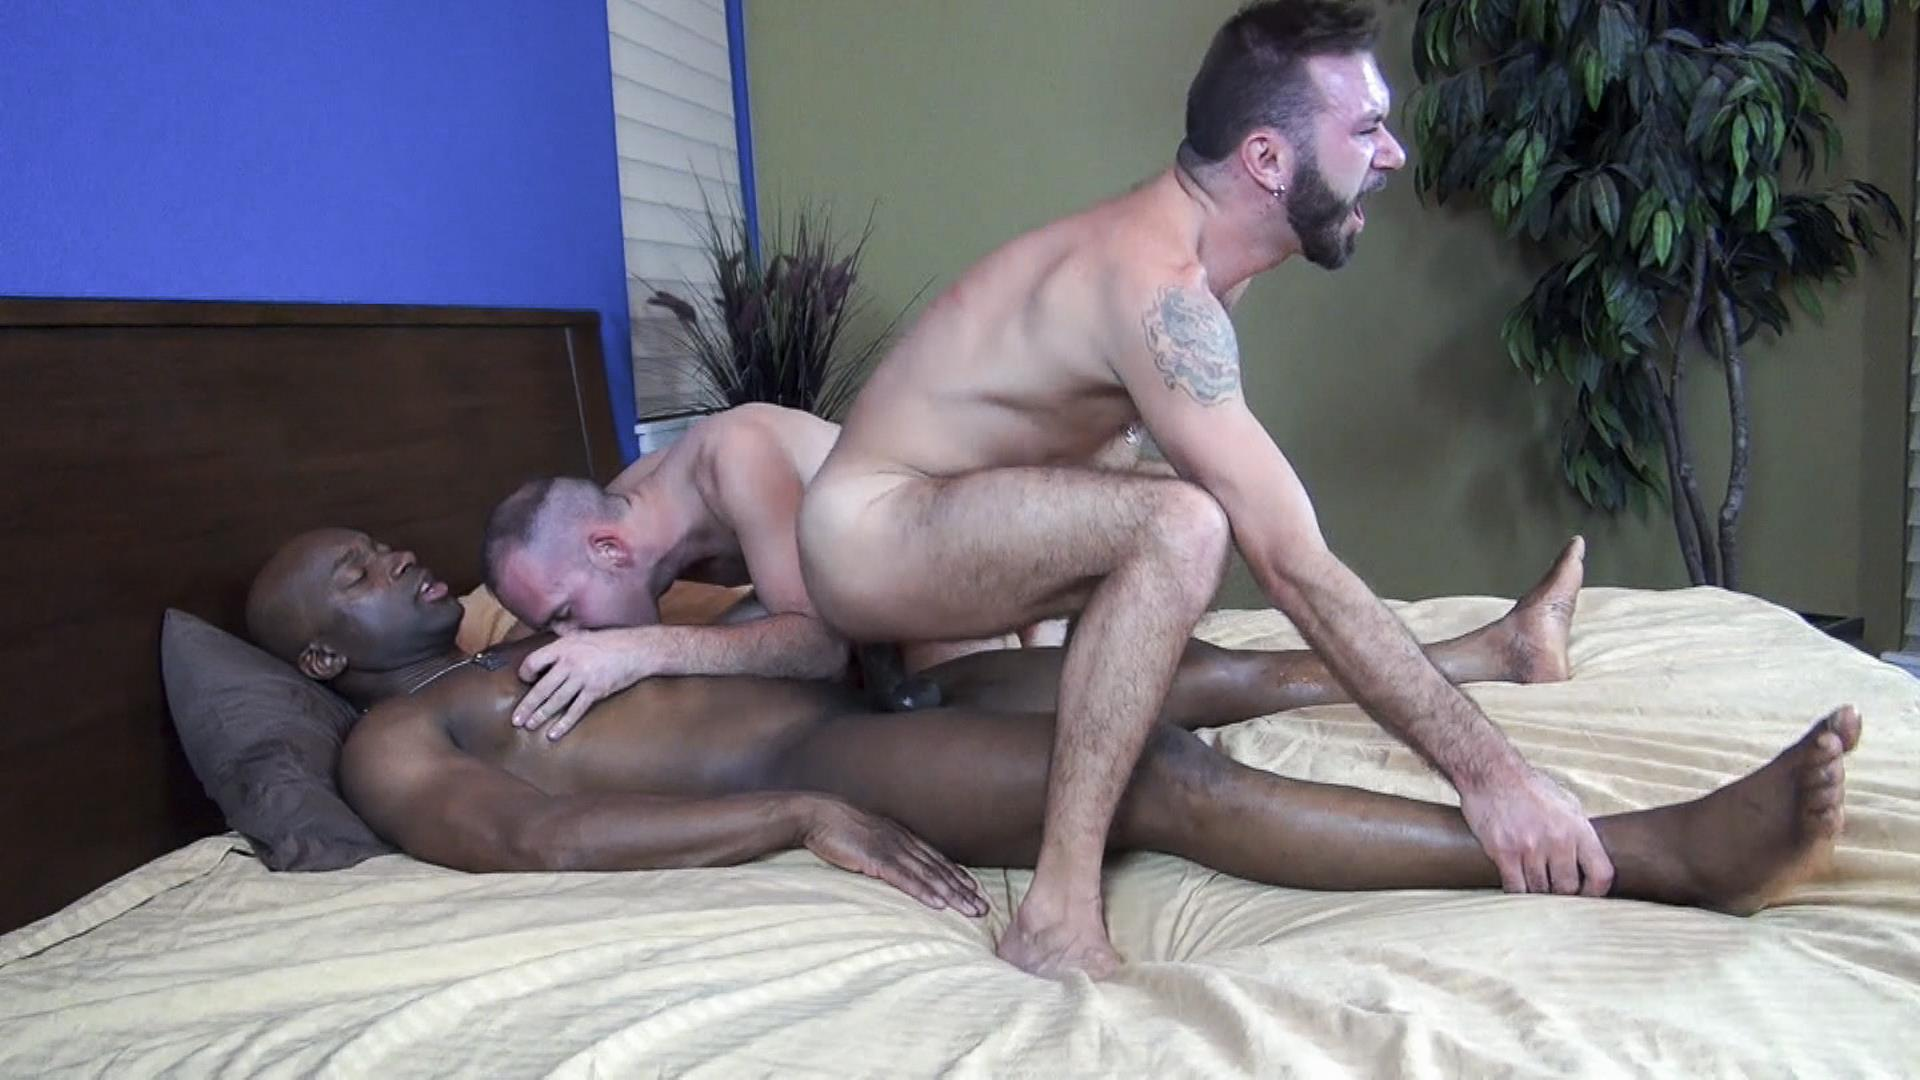 Raw Fuck Club Ethan Palmer and Champ Robinson and Trit Tyler Bareback Interrical Amateur Gay Porn 08 Champ Robinson Shares His Big Black Dick With 2 White Guys